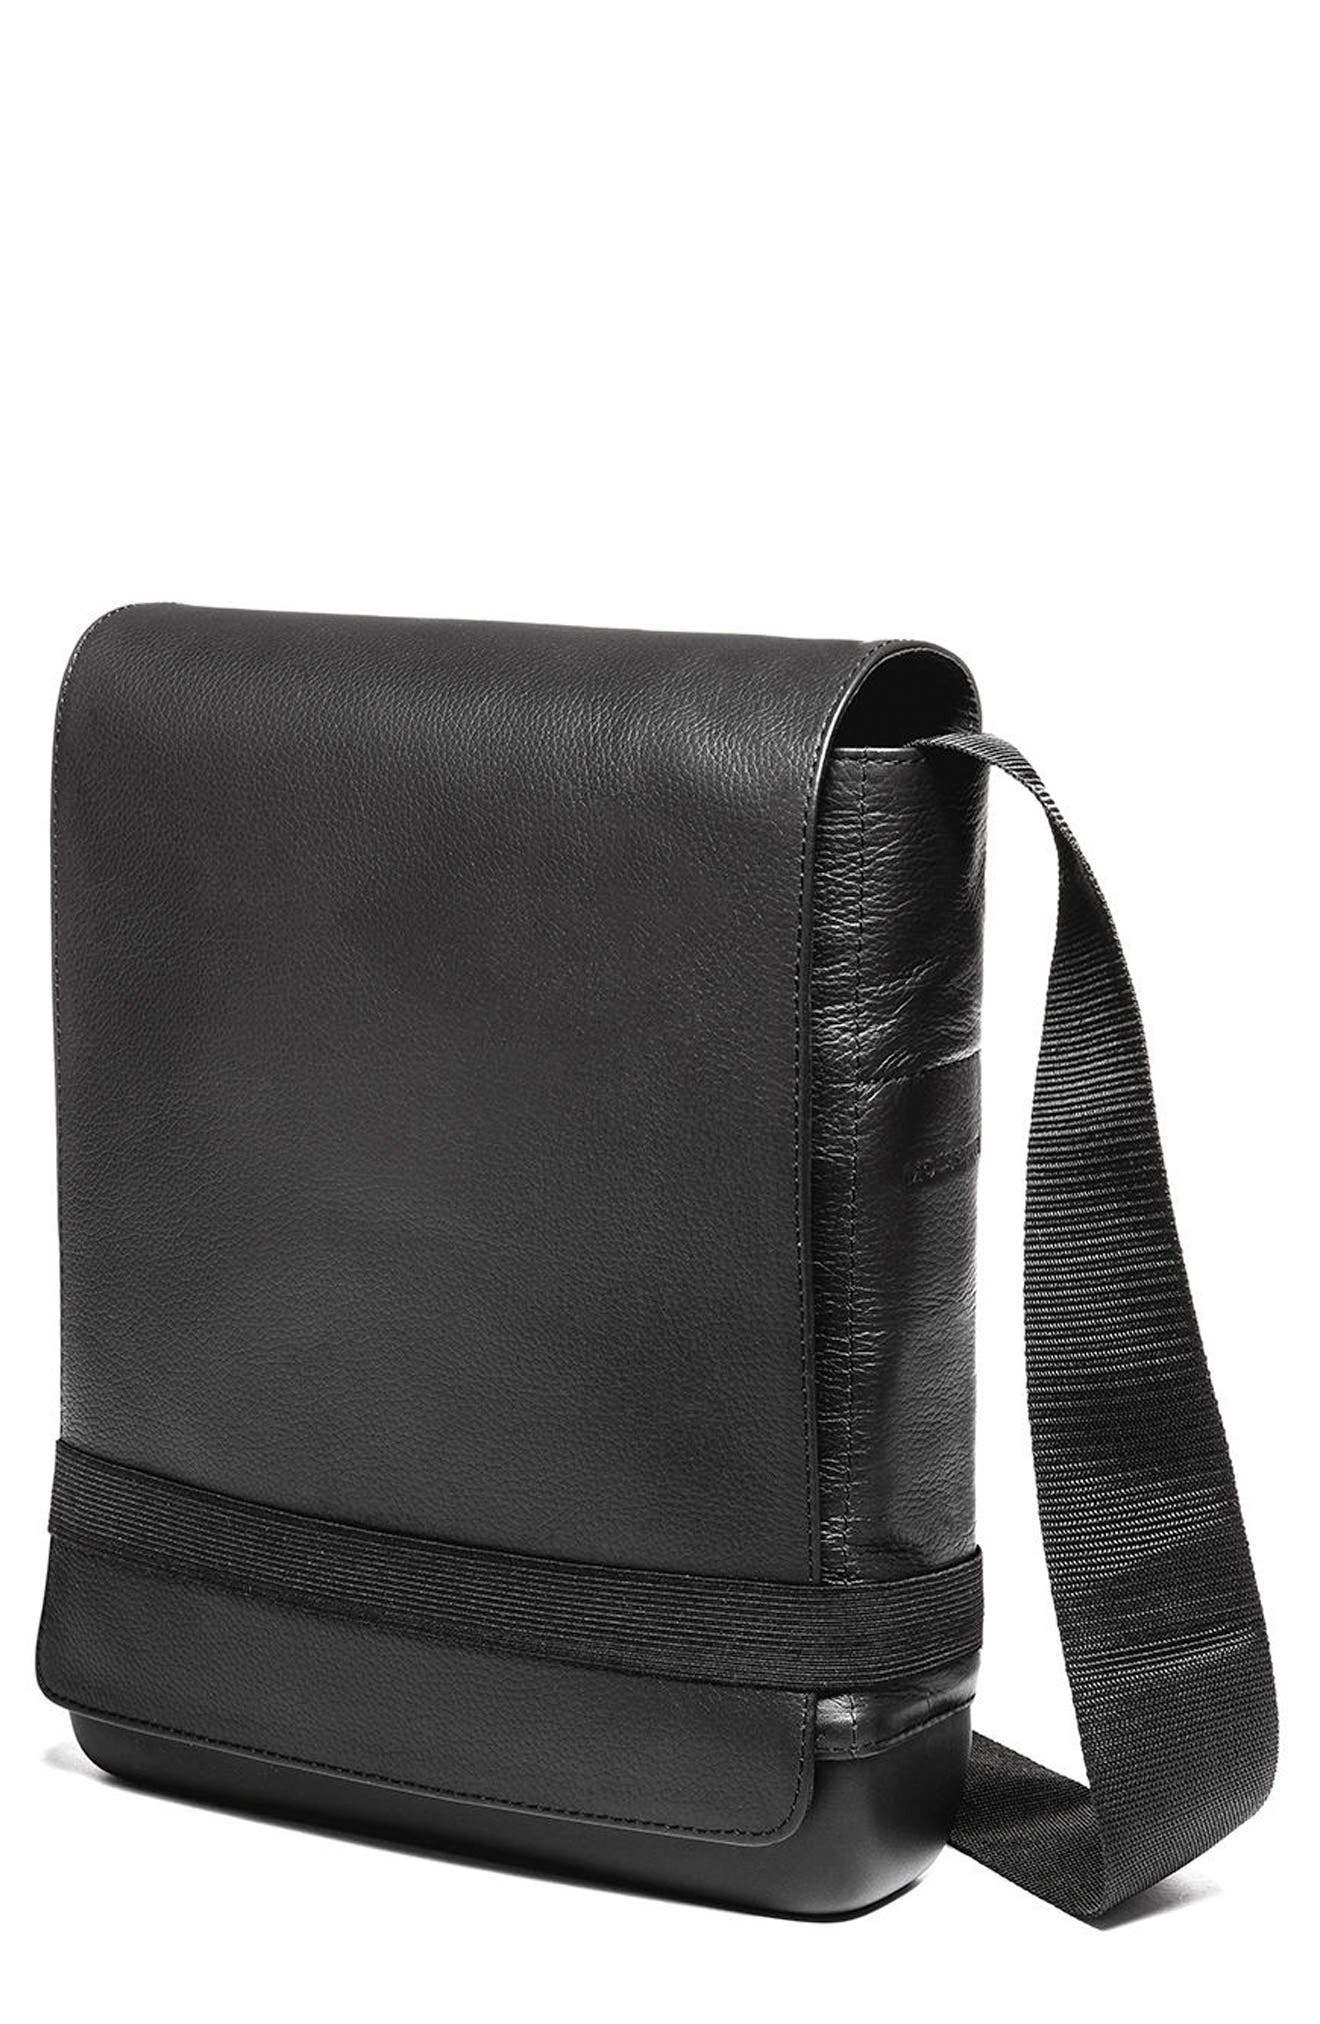 Leather Reporter Bag,                             Main thumbnail 1, color,                             001